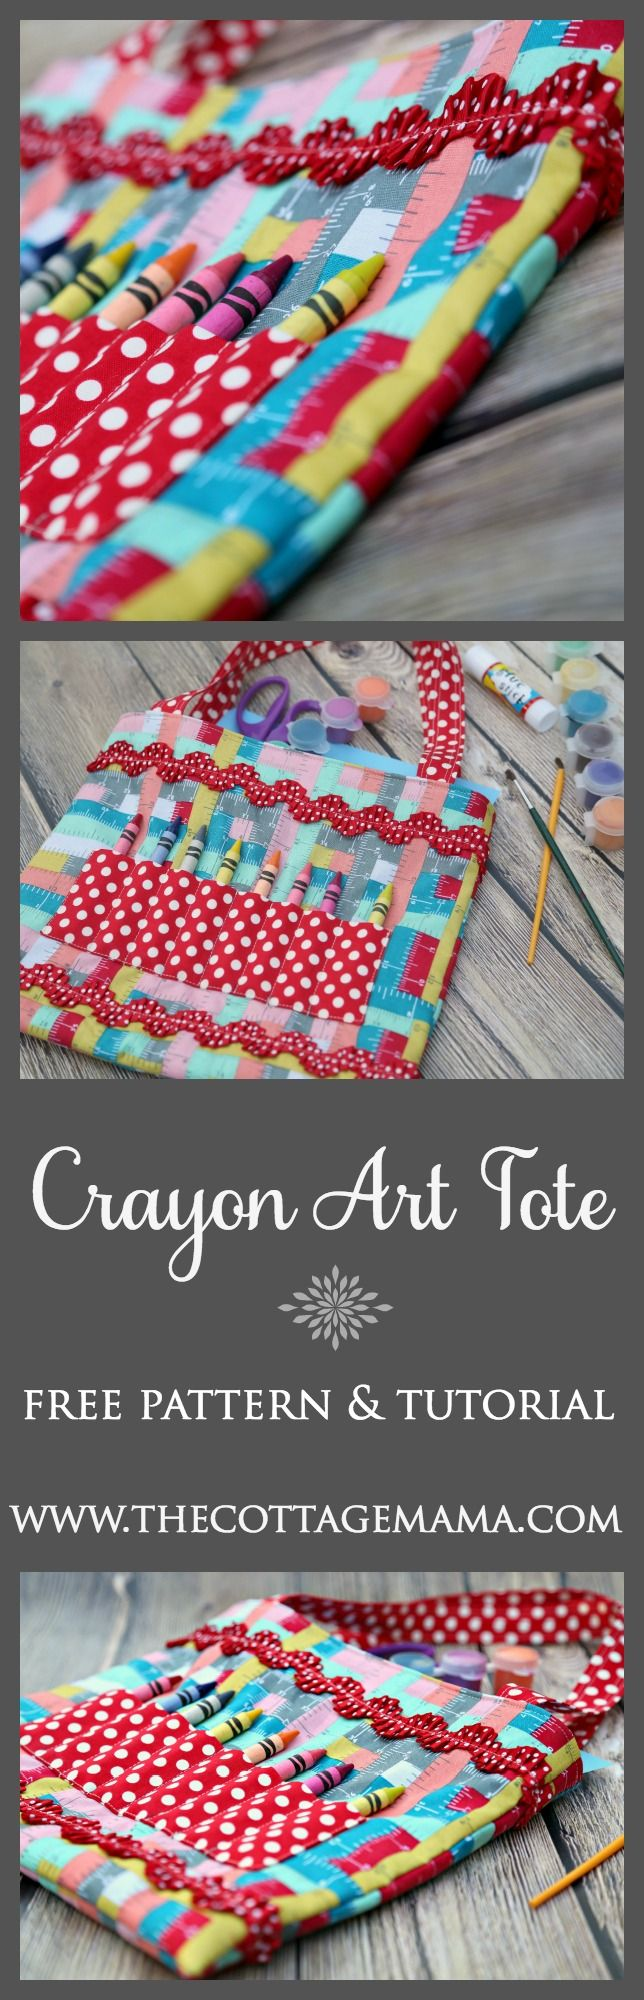 Free Crayon Art Tote Pattern and Tutorial from The Cottage Mama. www.thecottagemama.com